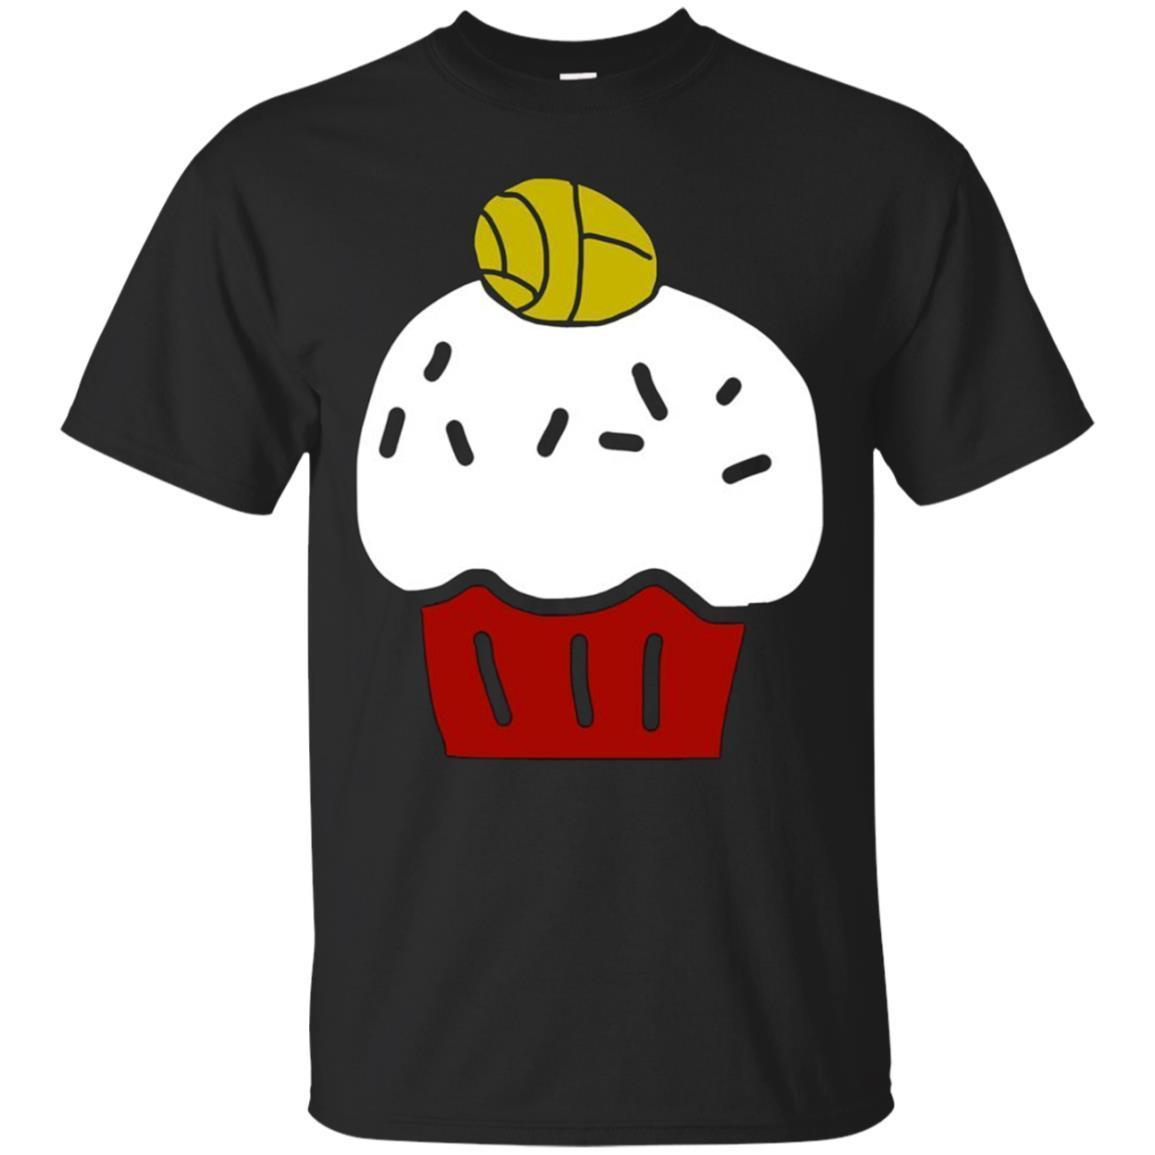 Cupcake With A Ring On It Shirts